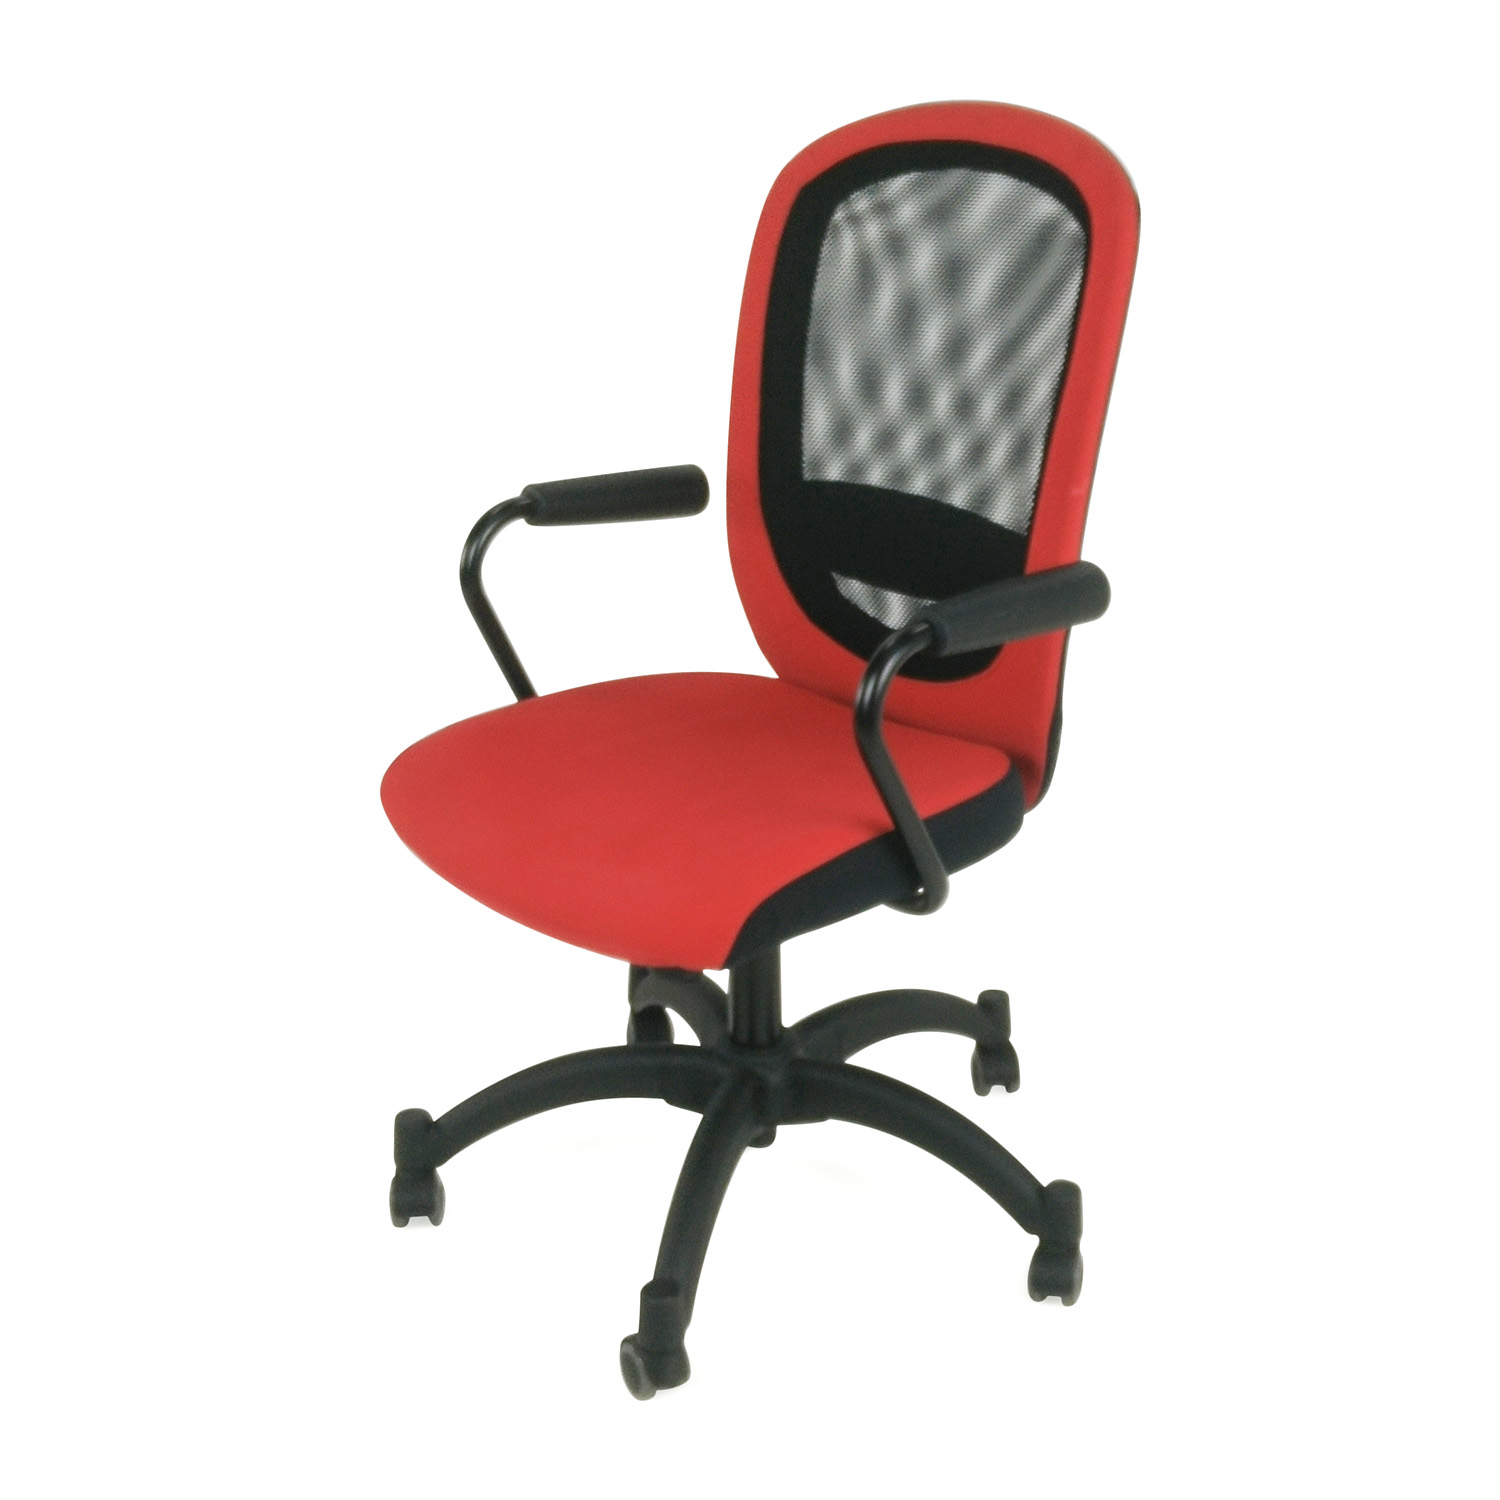 90 off ikea red office chair chairs for Ikea office desk chair